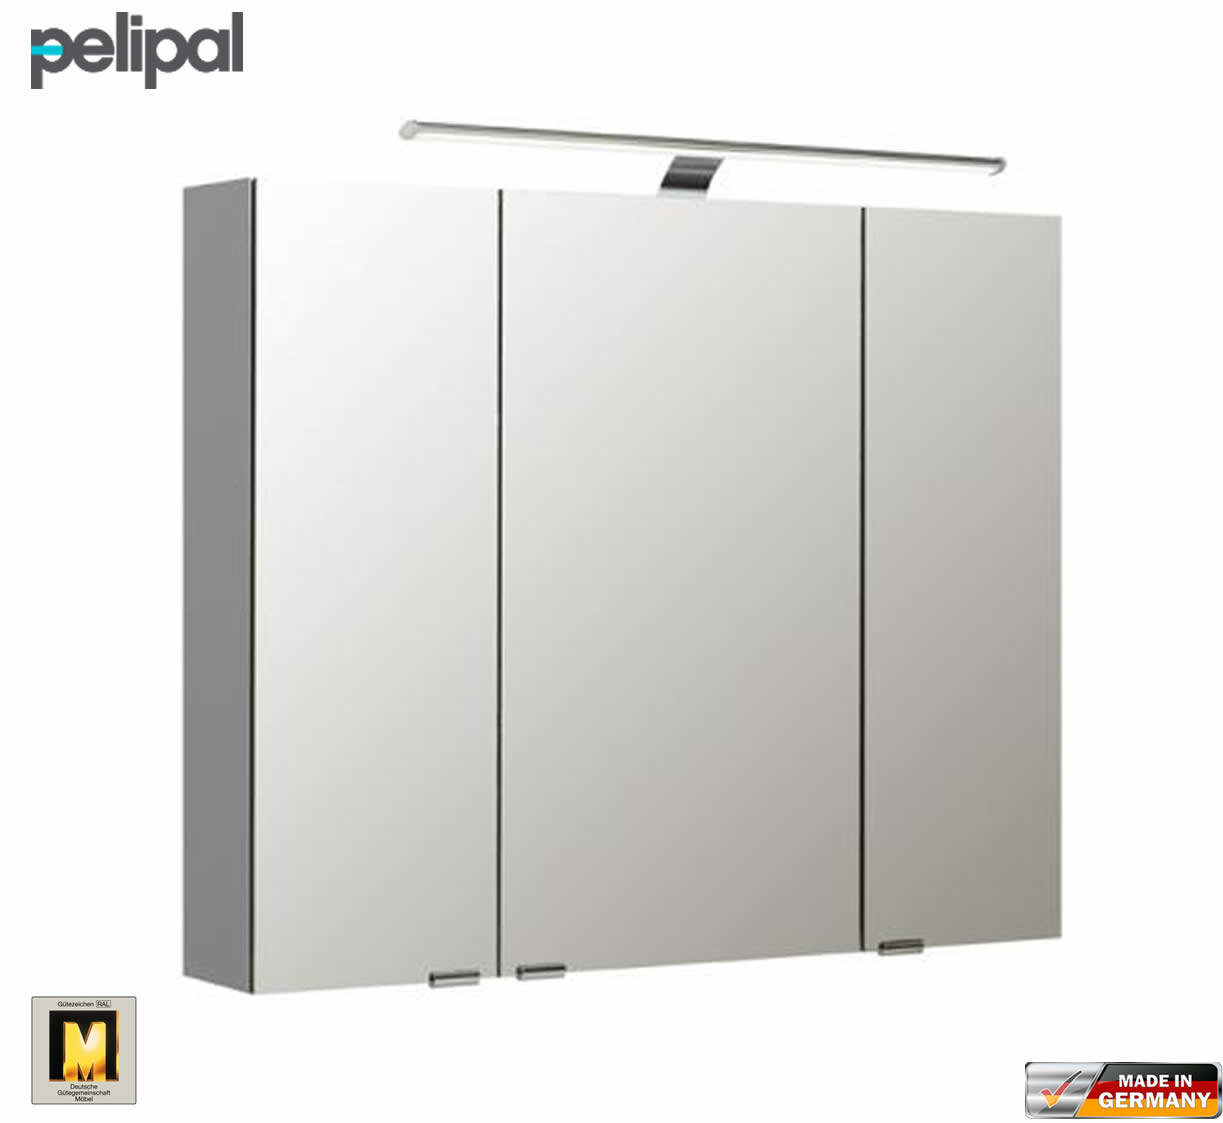 pelipal neutraler spiegelschrank s5 90 cm mit led. Black Bedroom Furniture Sets. Home Design Ideas